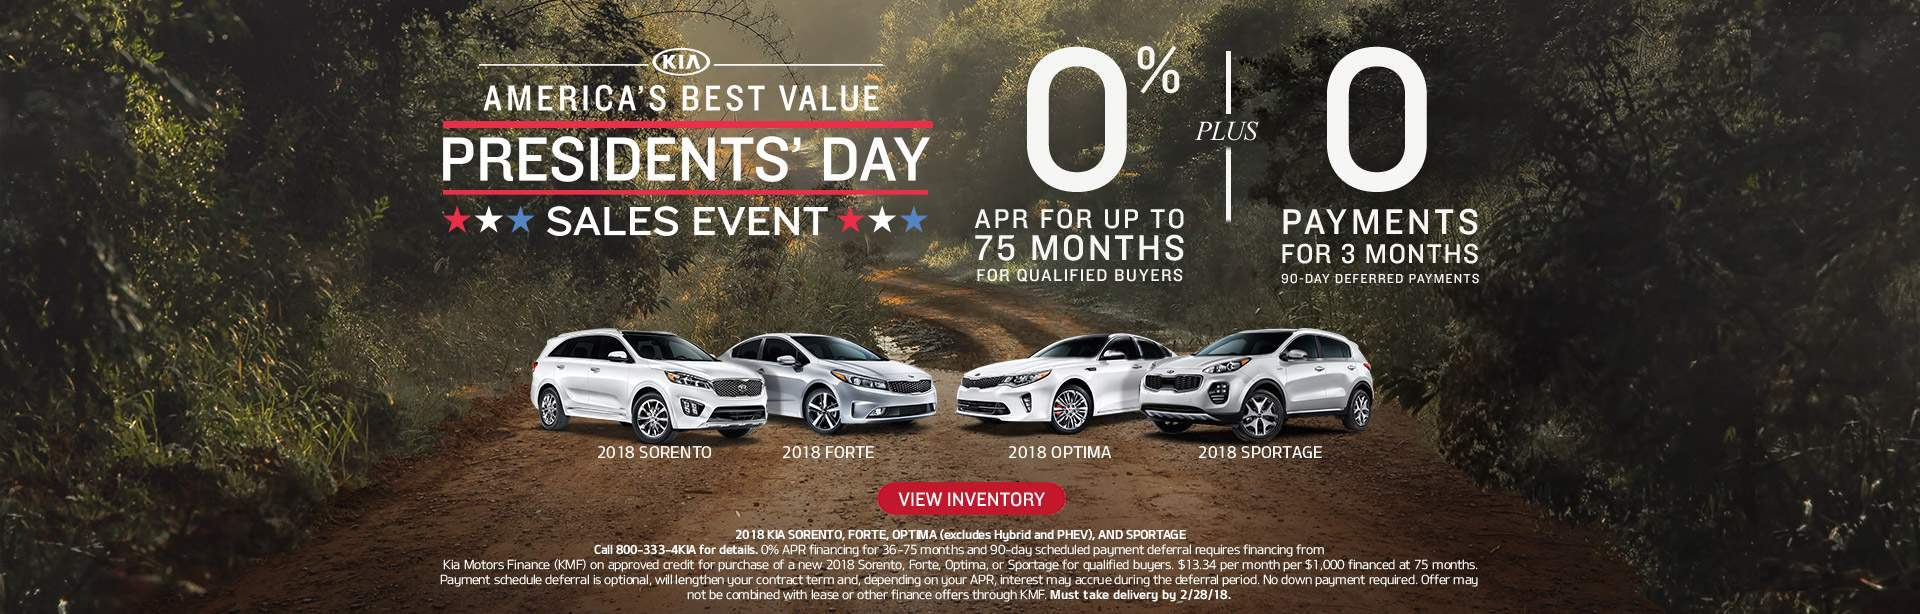 Presidents Day Sales Event at Mike Smith Kia